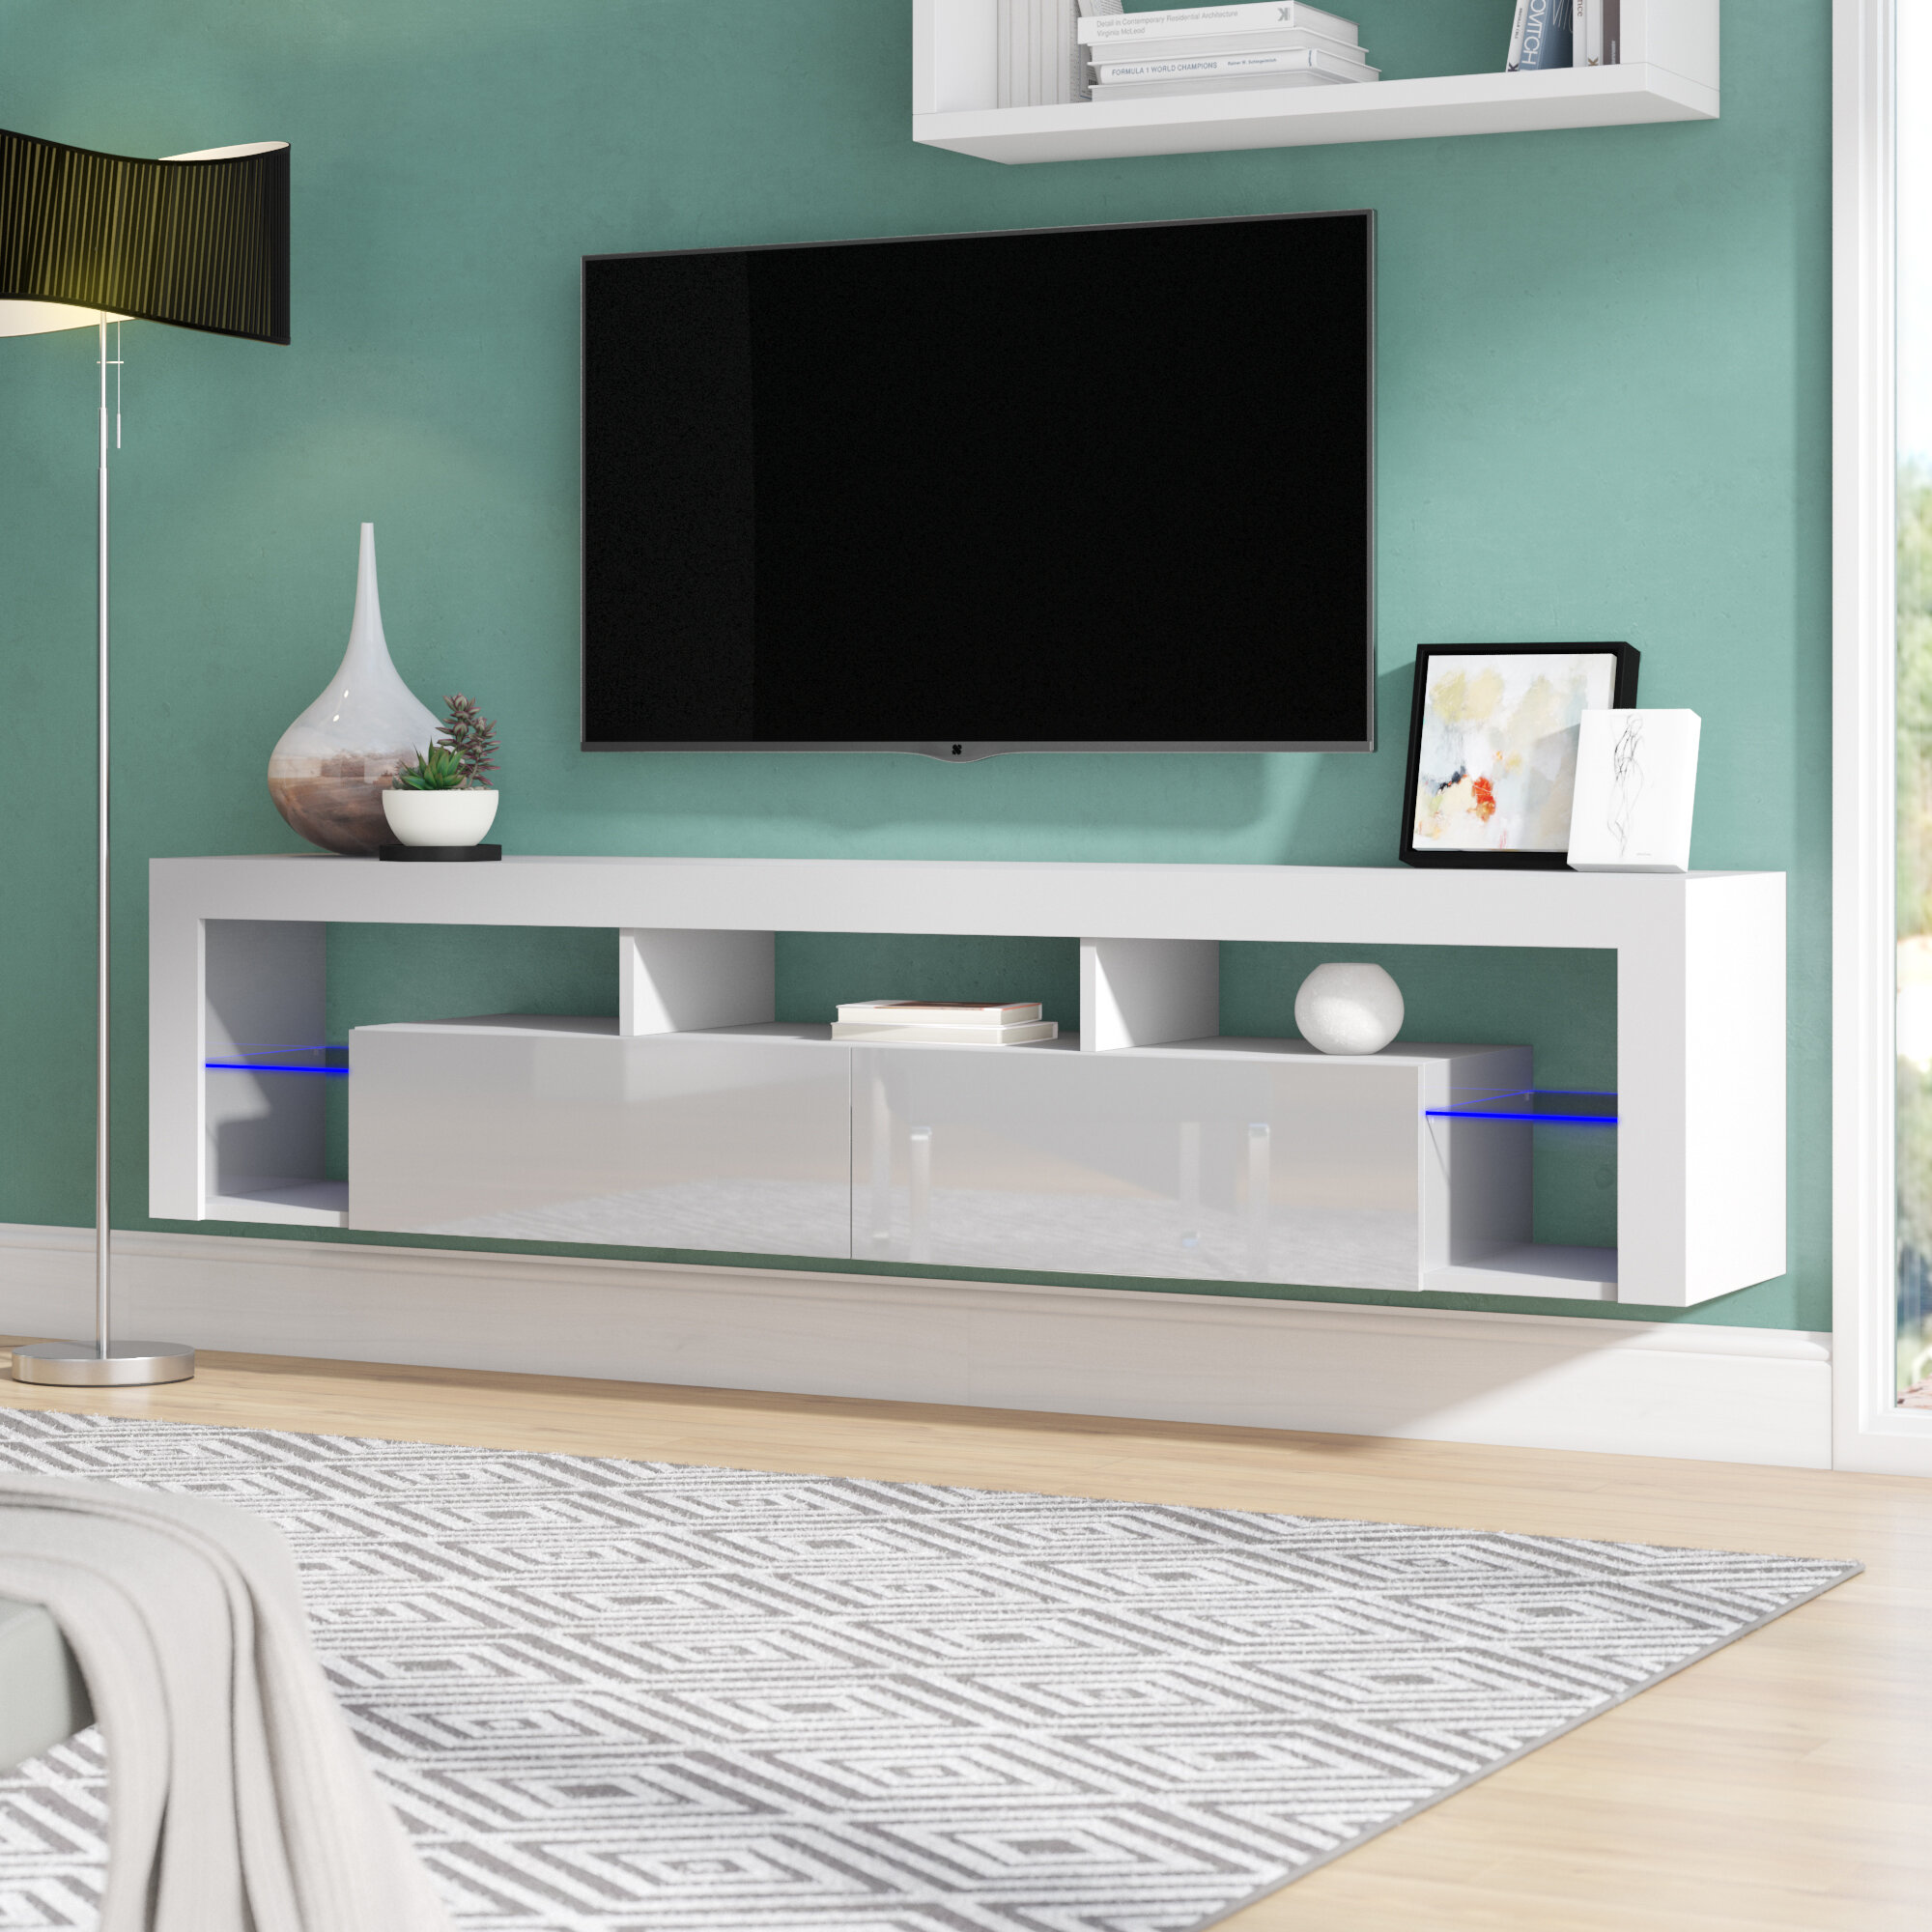 Awe Inspiring Floating Milano Bottcher Tv Stand For Tvs Up To 78 Download Free Architecture Designs Scobabritishbridgeorg